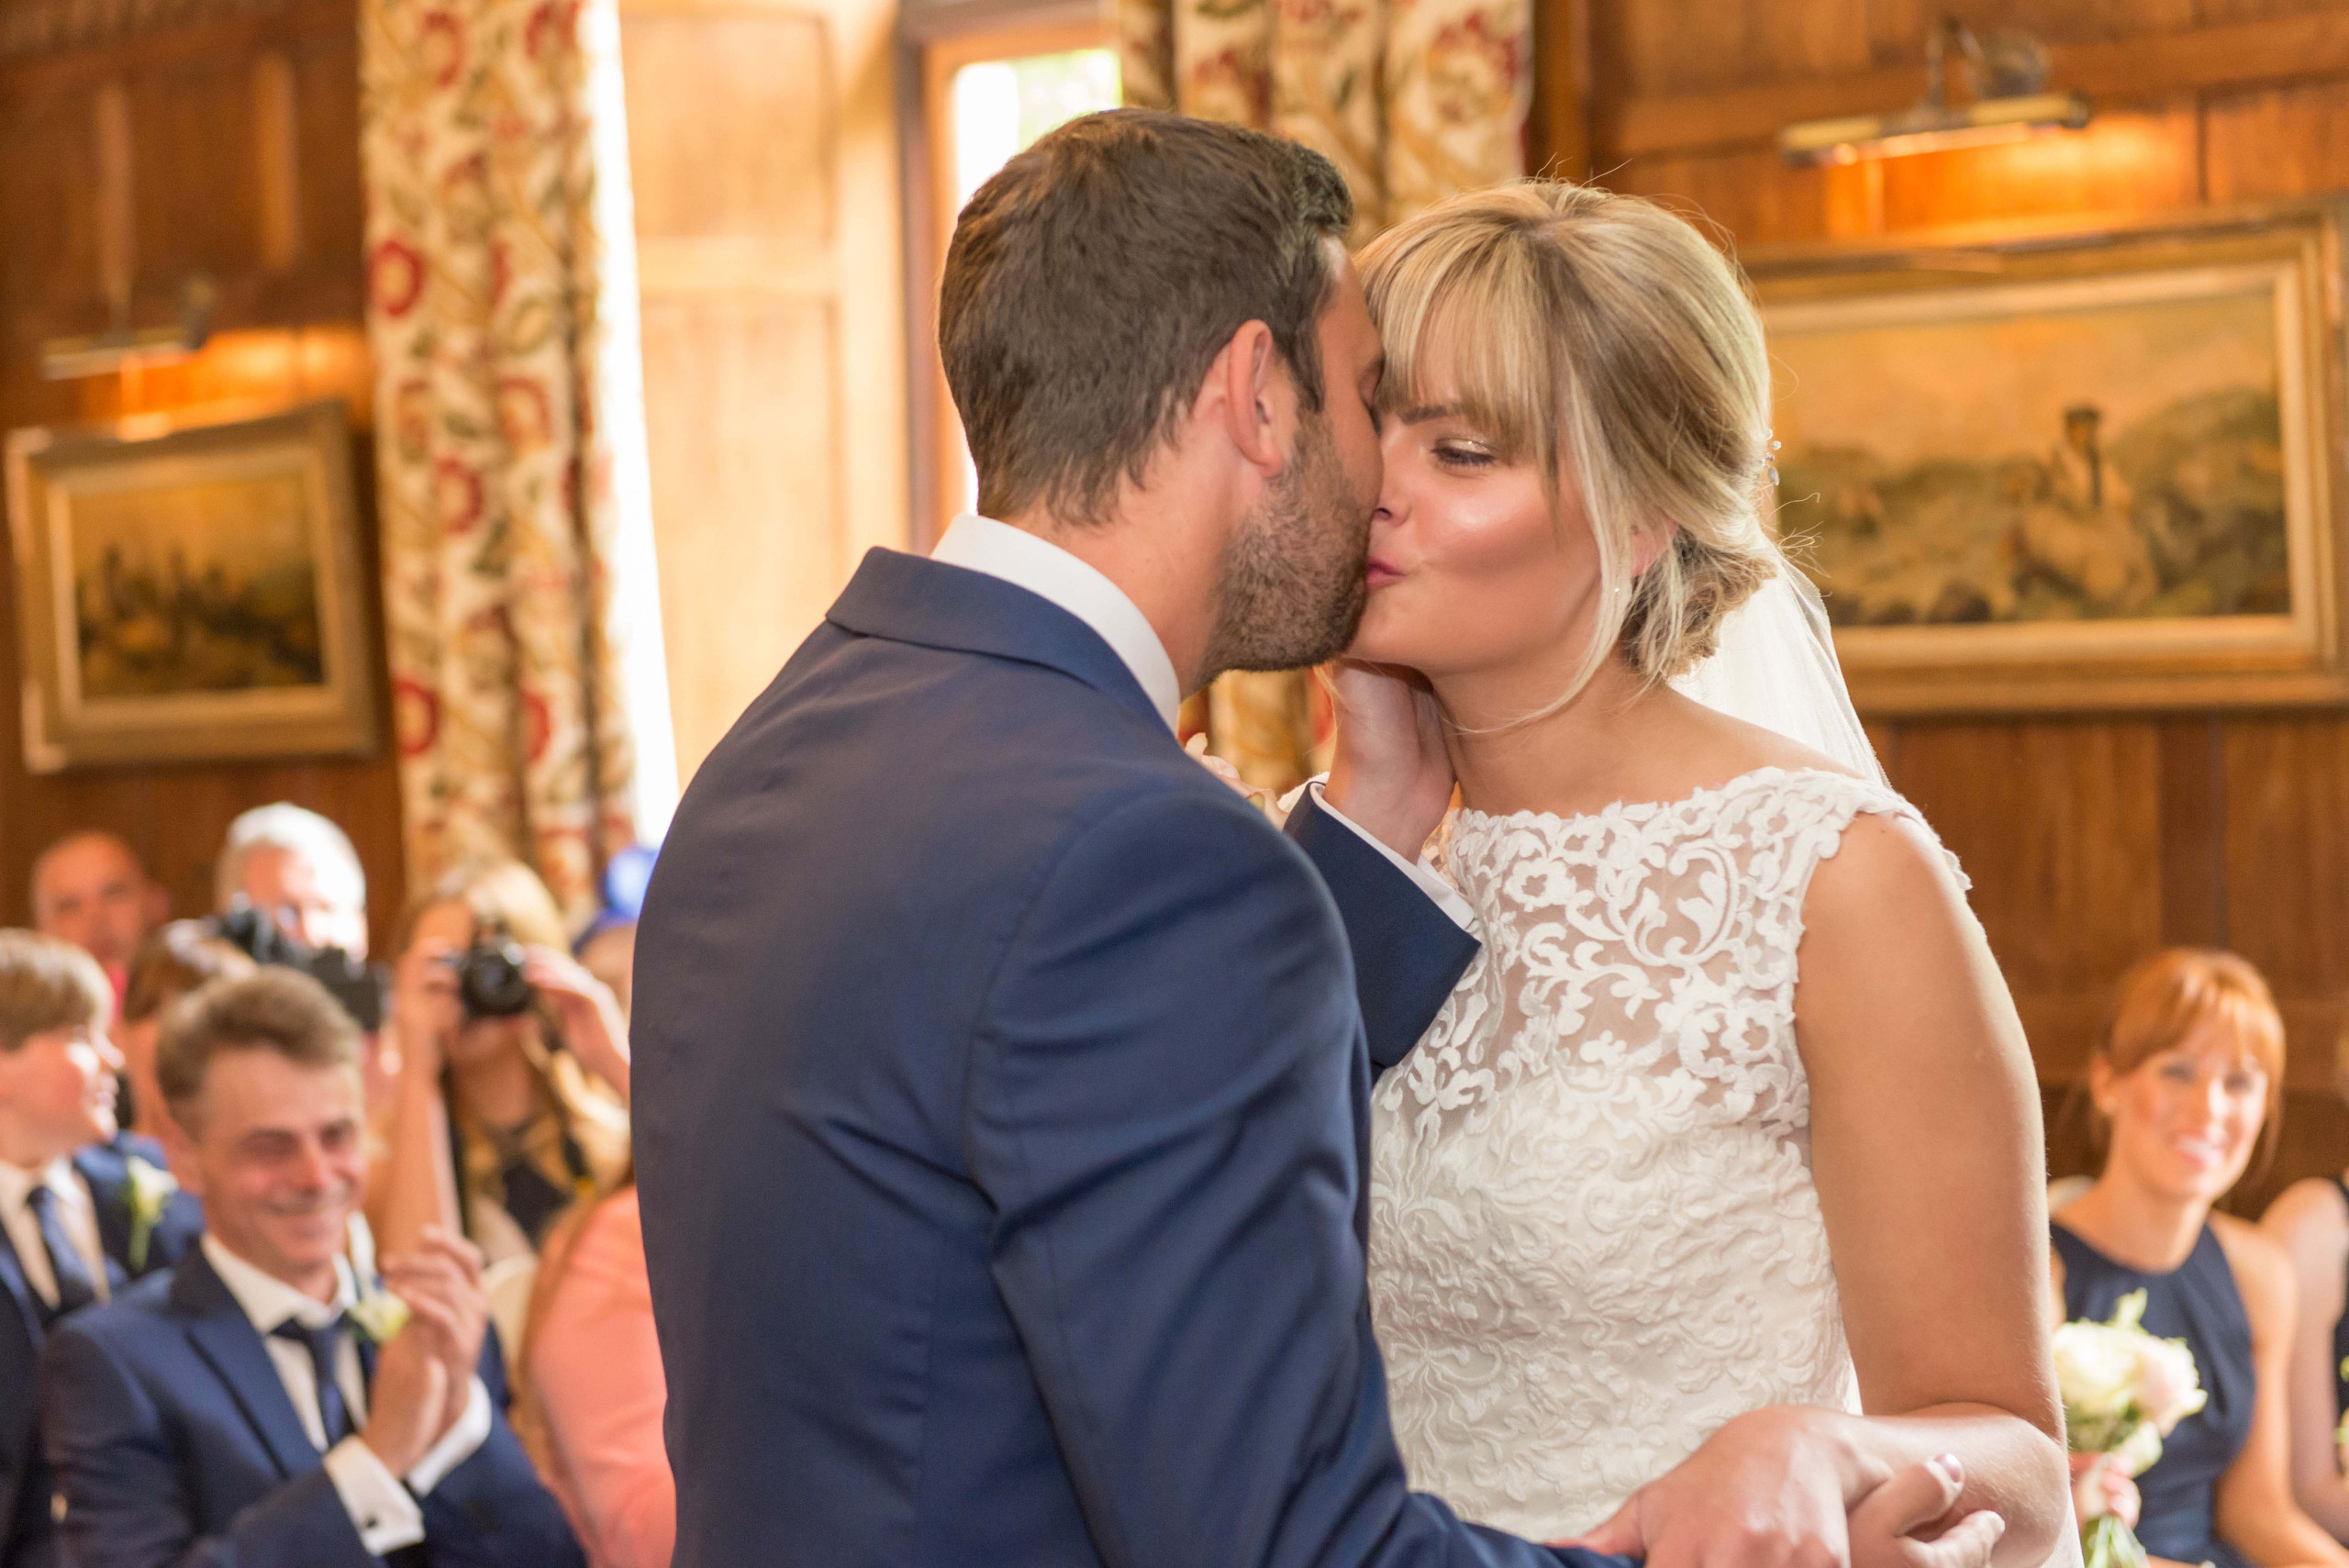 Photograph of bride and groom's first kiss during wedding ceremony on wedding day at Ellingham Hall wedding venue in Northumberland